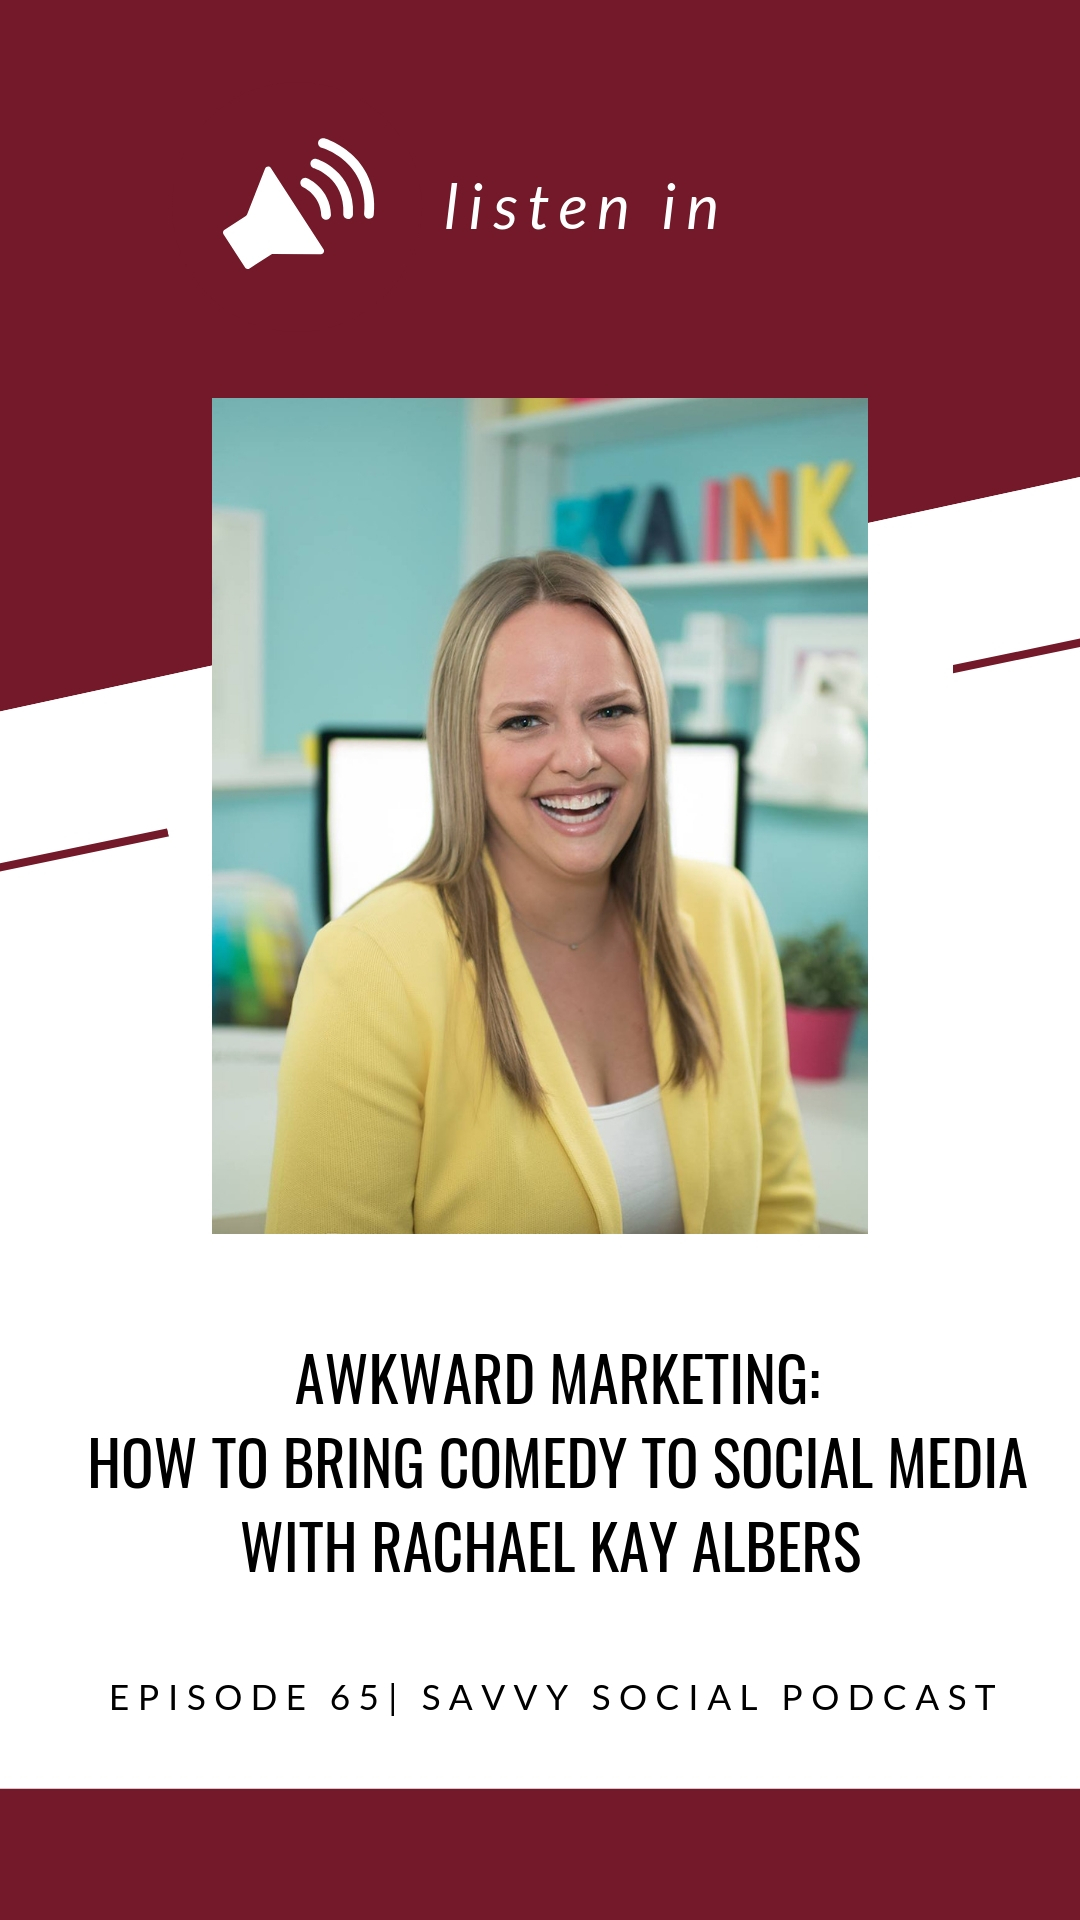 Online marketing, email marketing, social media marketing—it can all be awkward and uncomfortable, especially if you're a new entrepreneur or business owner! Rachael Kay Albers from Awkward Marketing joins me today to share where the best content comes from, what tools you need for your online business, how to repurpose and share your episodes on social media, and the value of getting your audience involved in your process!